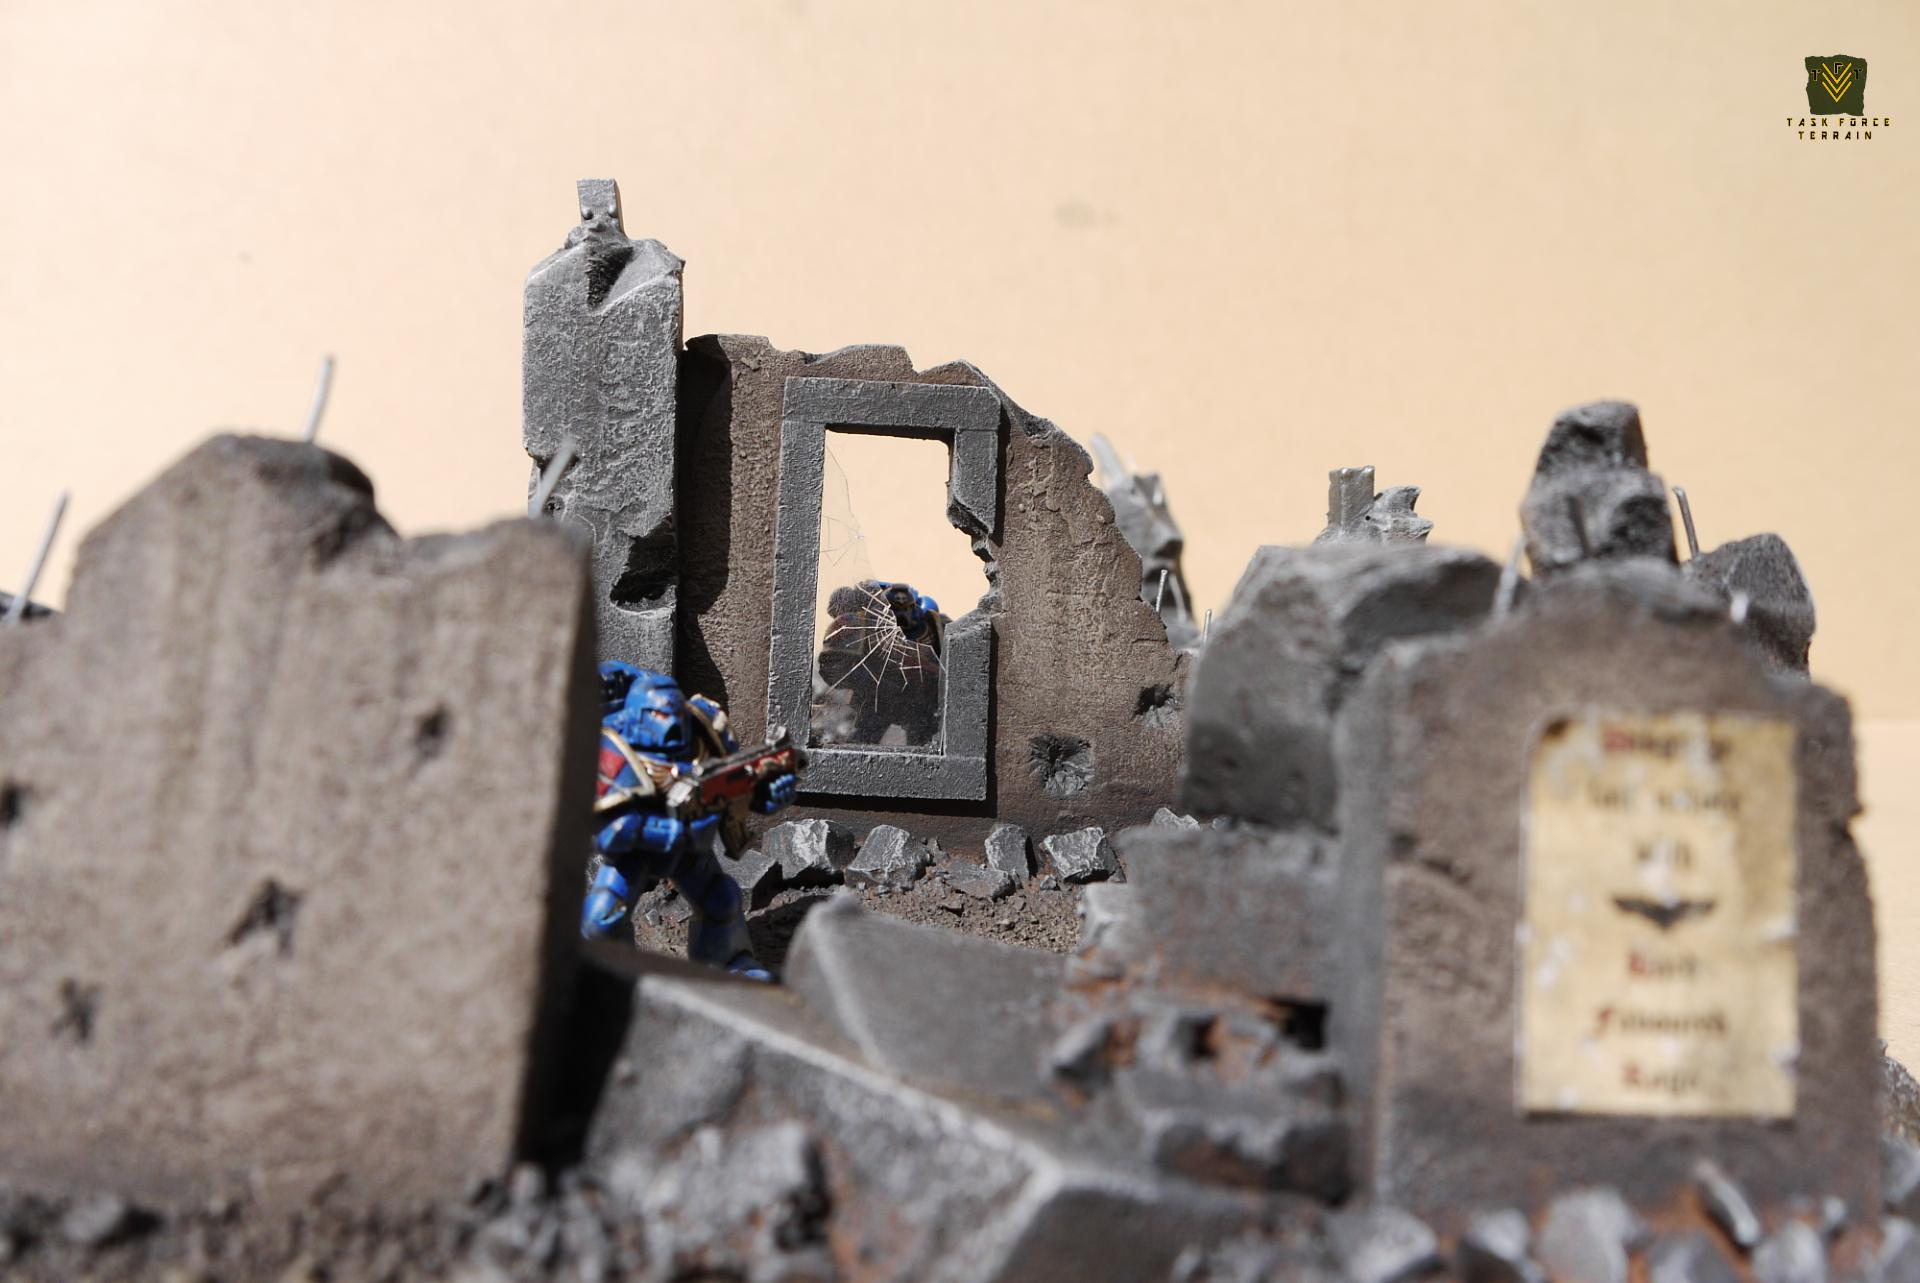 28mm, 28mm Warhammer, Barricade, Buildings, Cities Of Death, City, Force Terrain, Task, Taskforceterrain, Terrain, Urban, Wargames, Wargamesterrain, Warhammer 40,000, Warhammer Fantasy